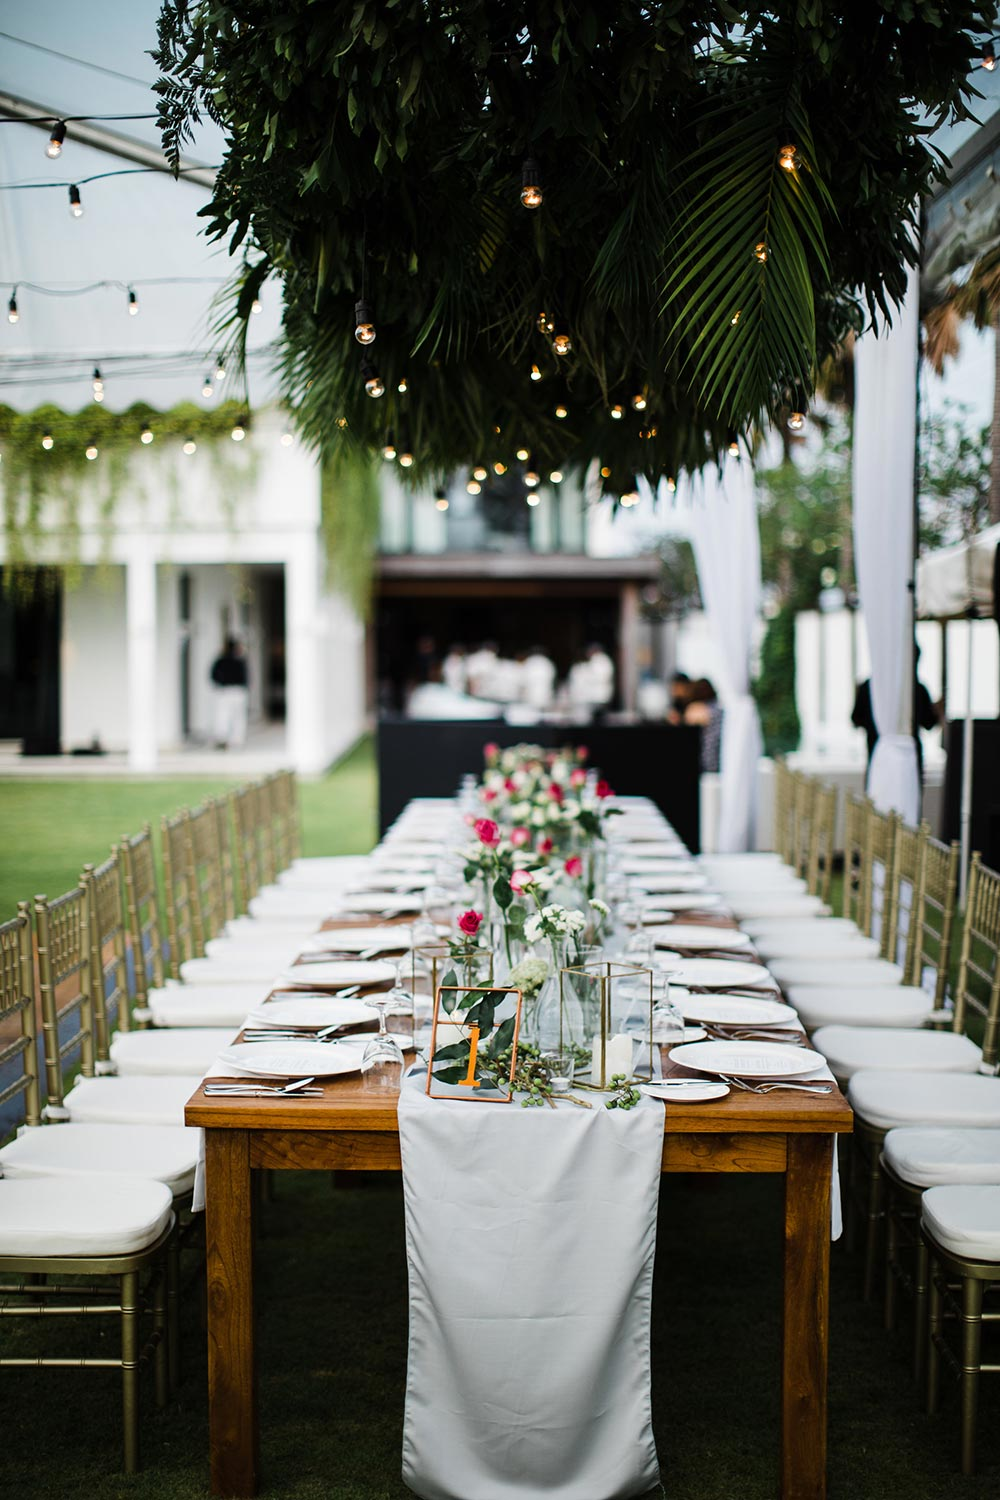 tropical wedding reception tablescape with palm frond ceiling